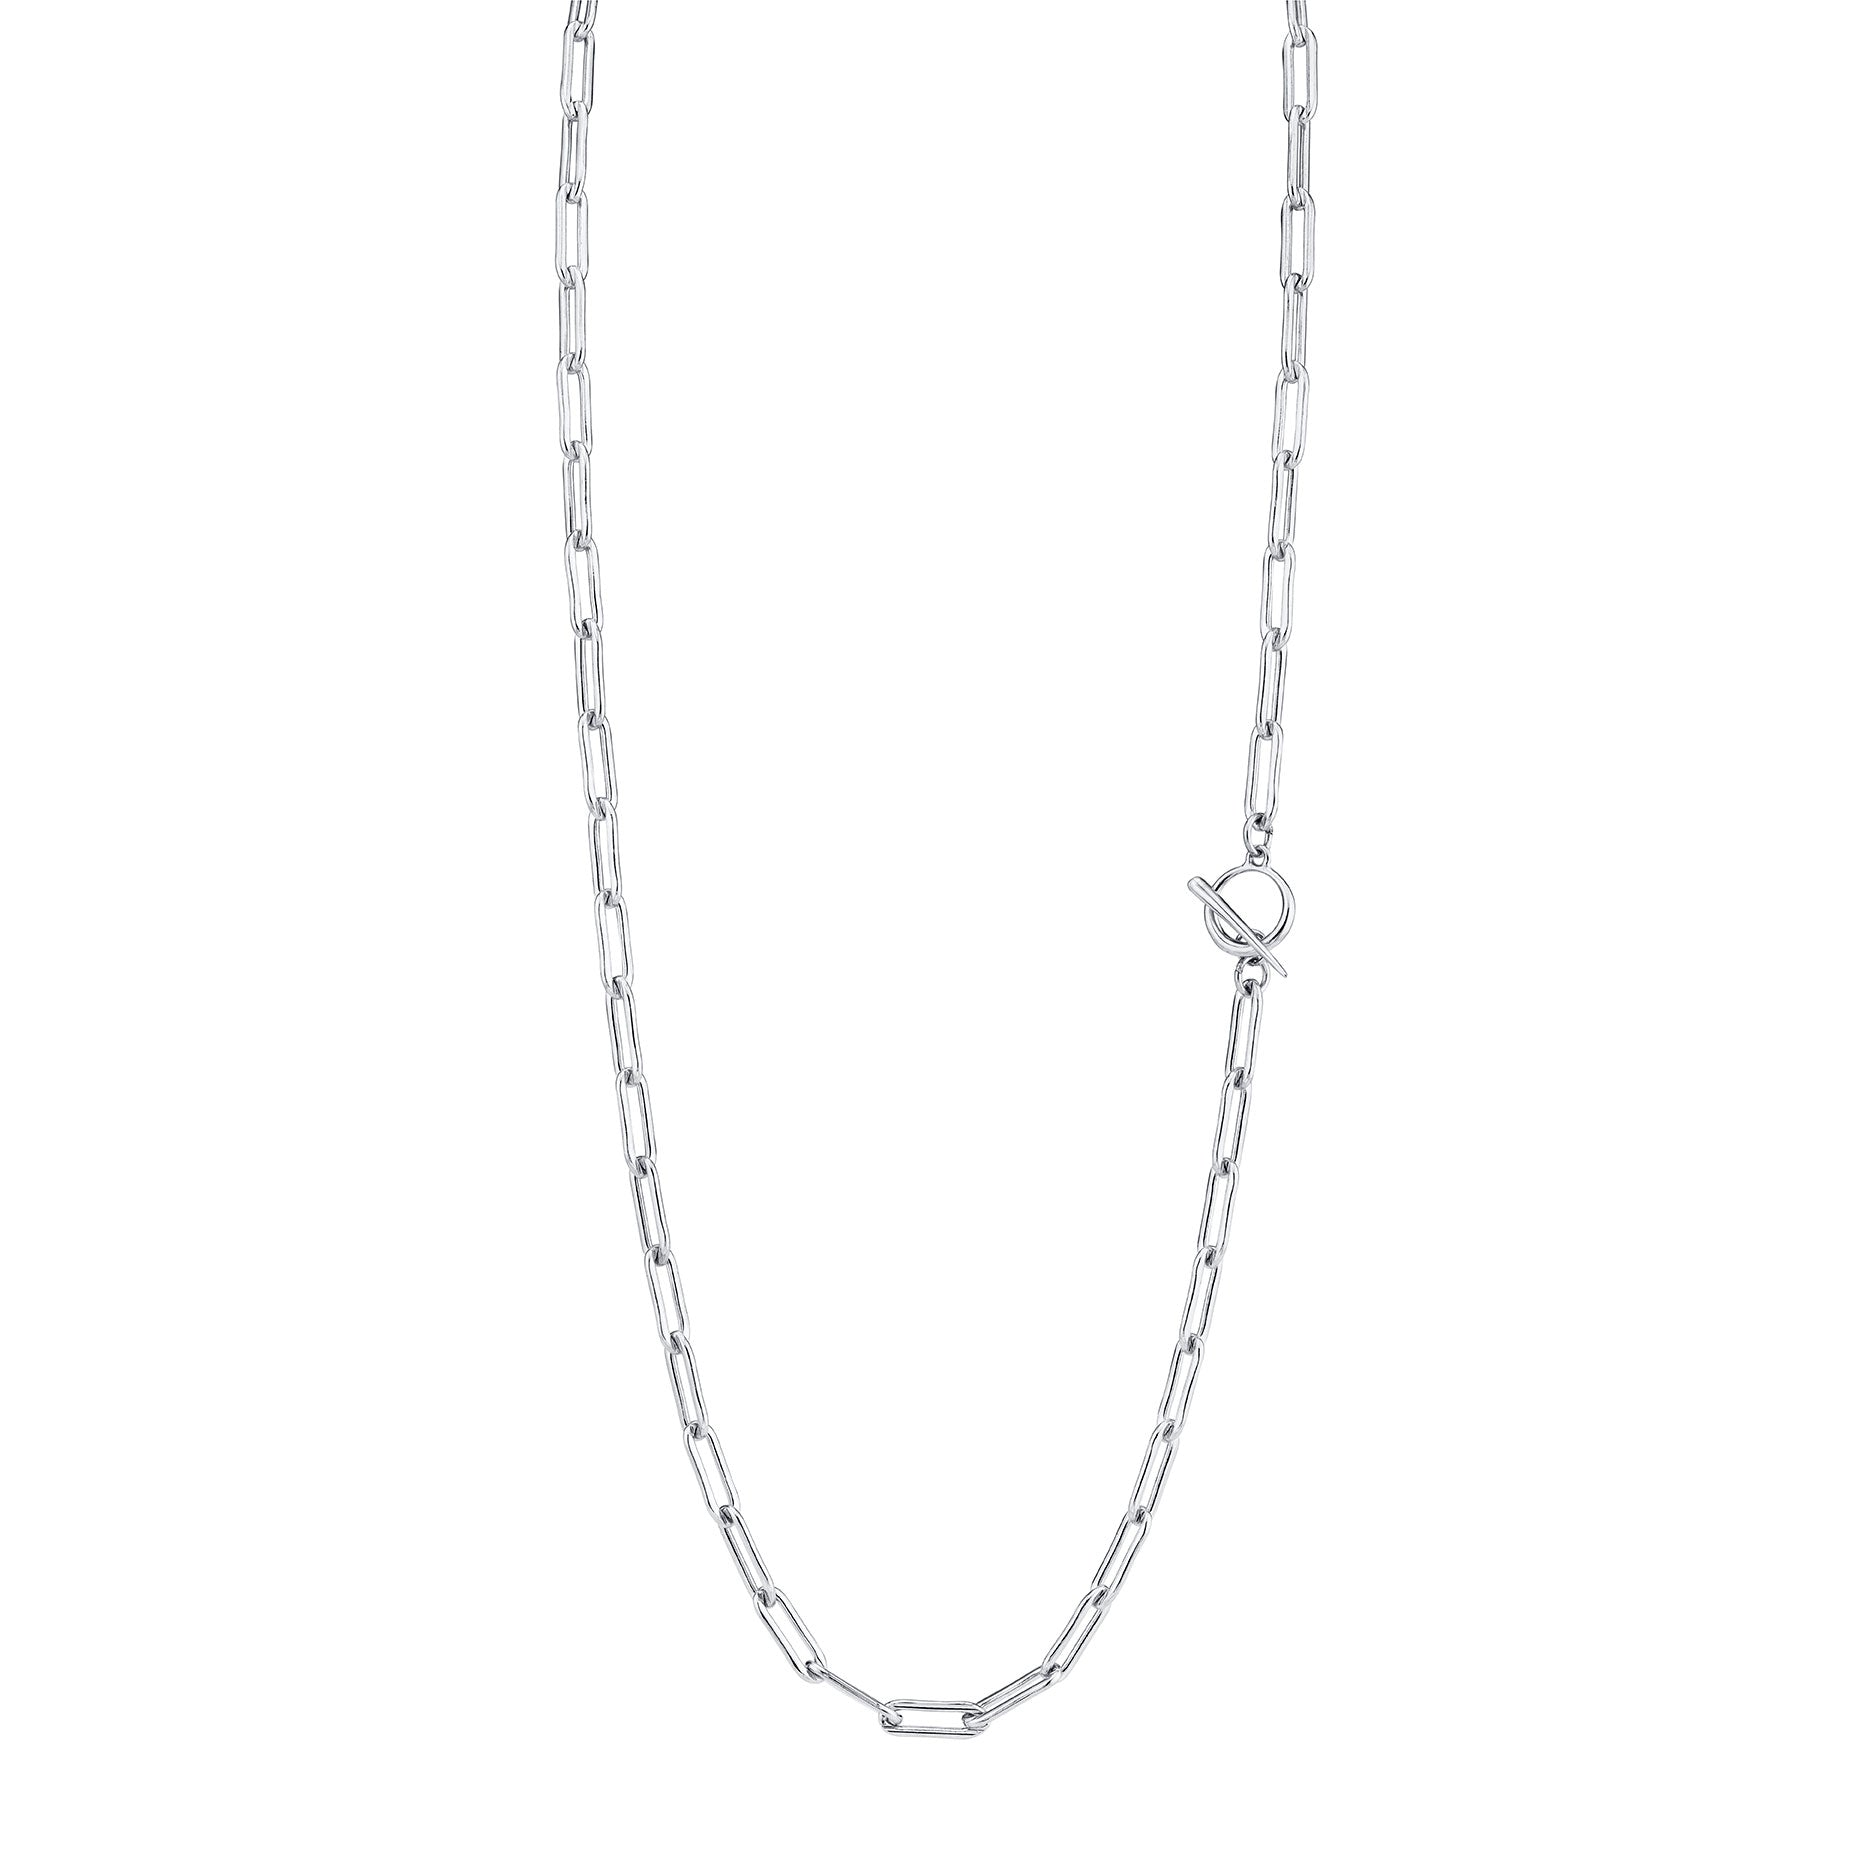 Rectangular Link Chain Necklace With Tusk Clasp - Gabriela Artigas